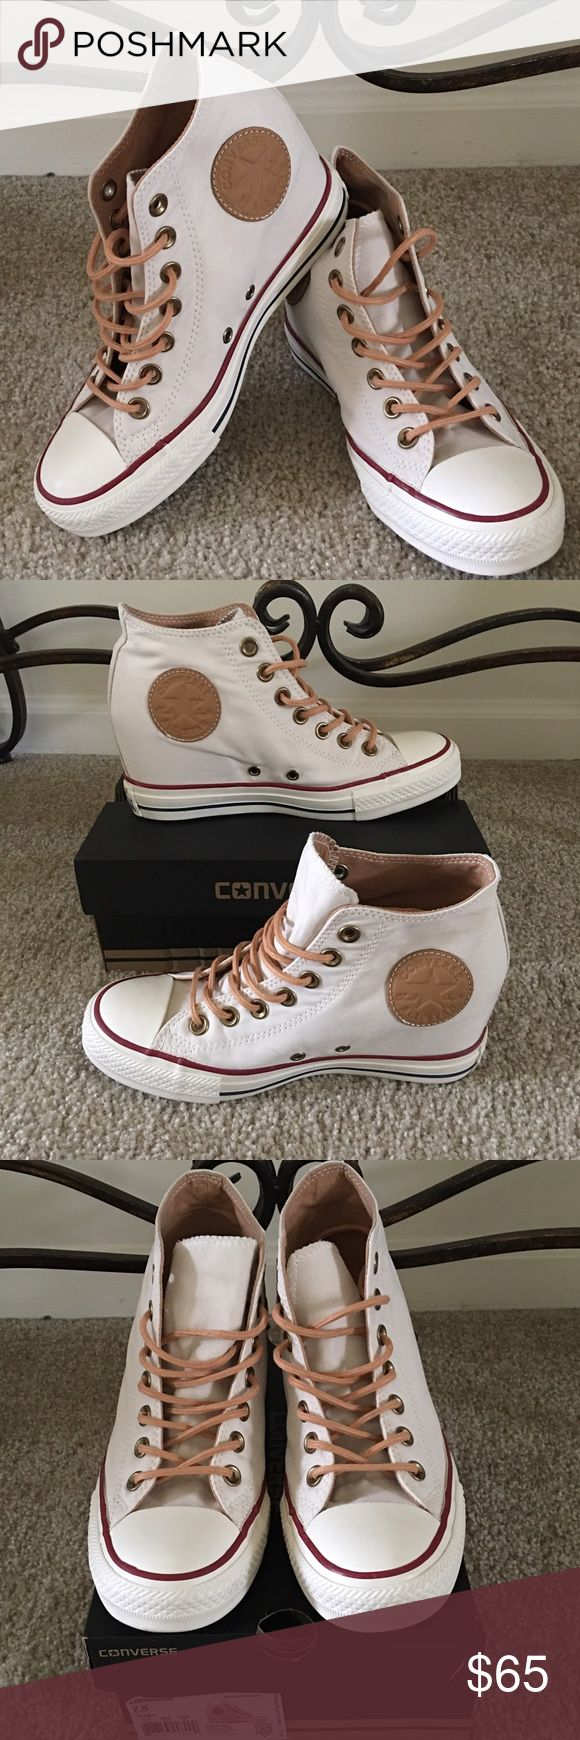 Walking dead converse shoes for sale -  Sale Converse Chuck Taylor Lux Mid Nwt